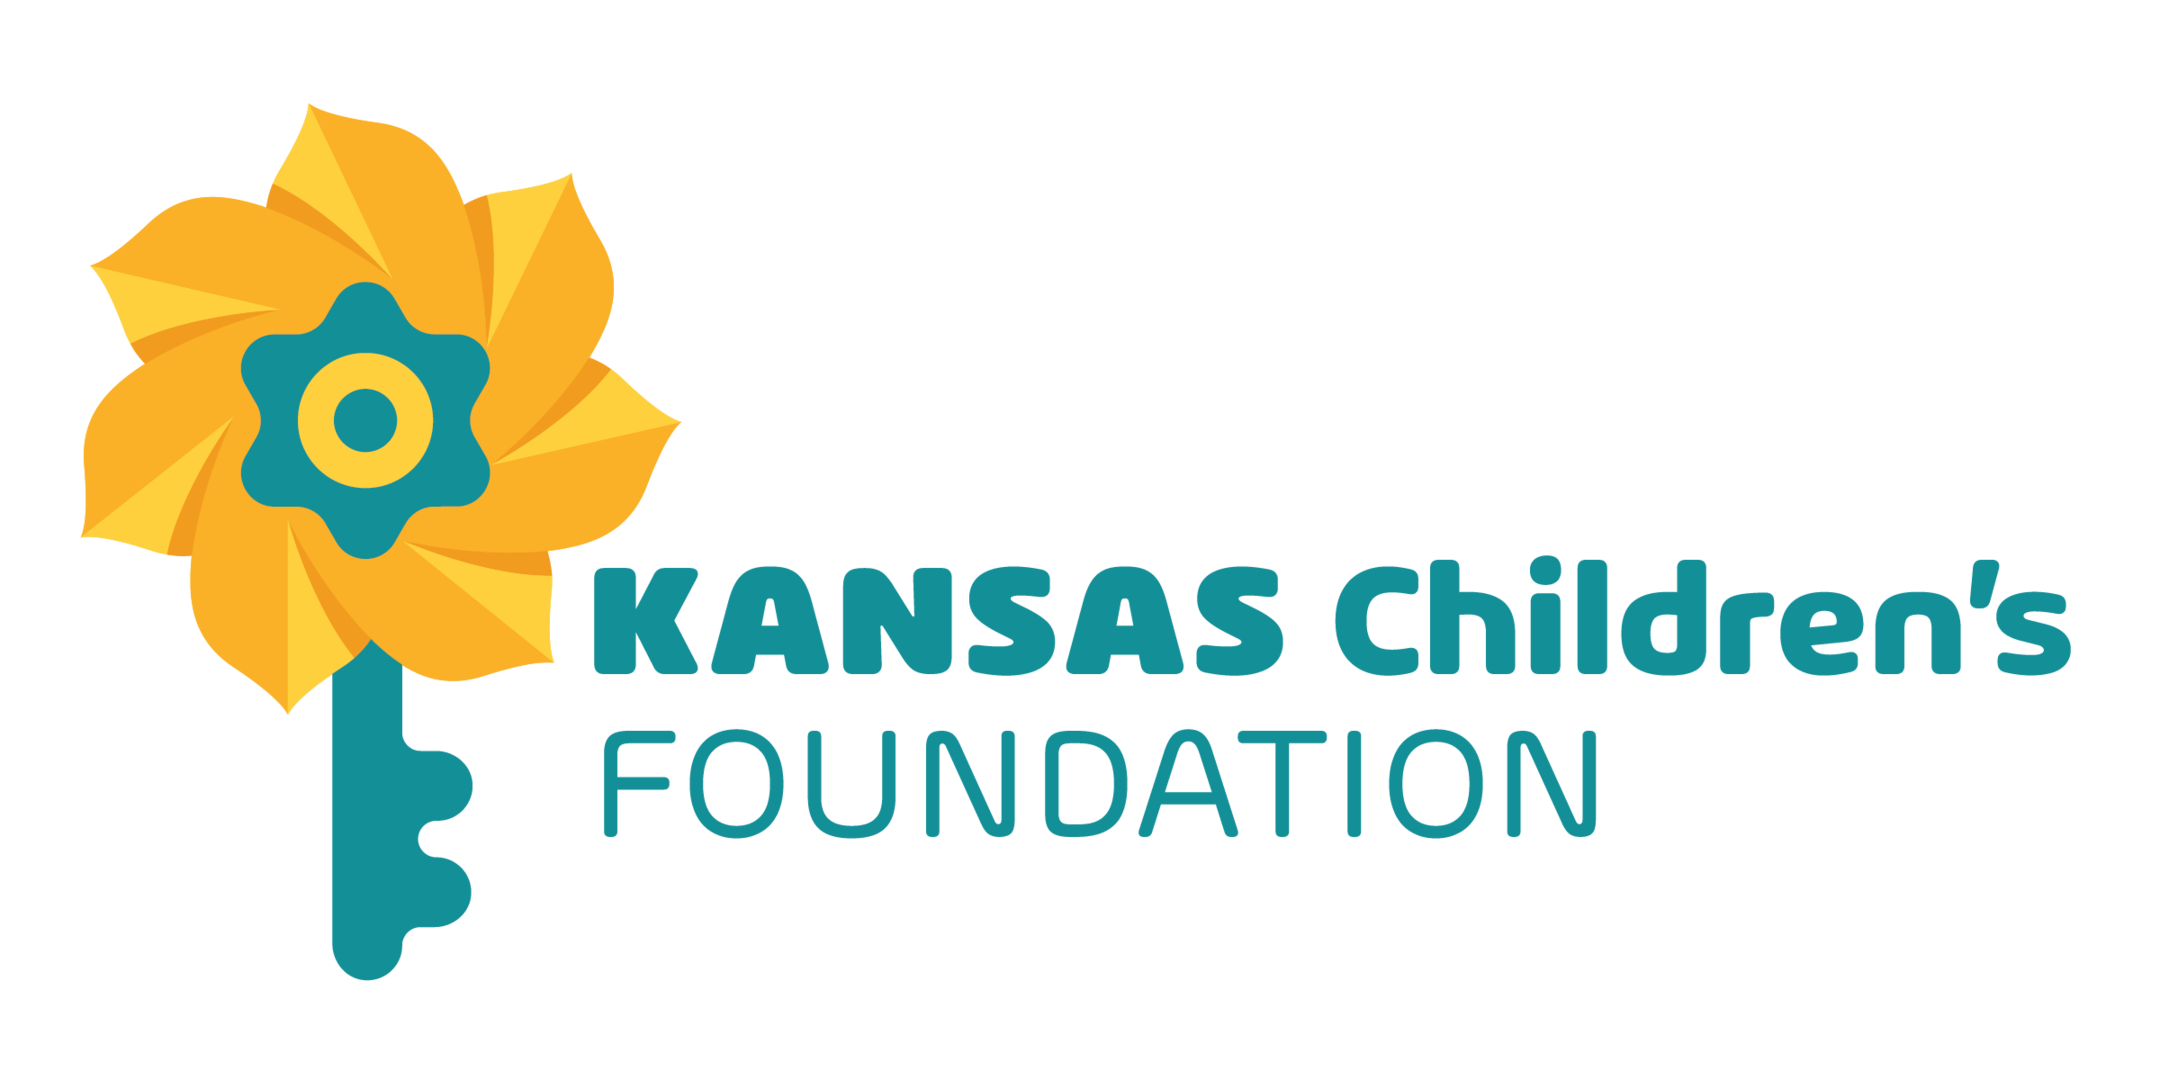 Kansas Children's Foundation